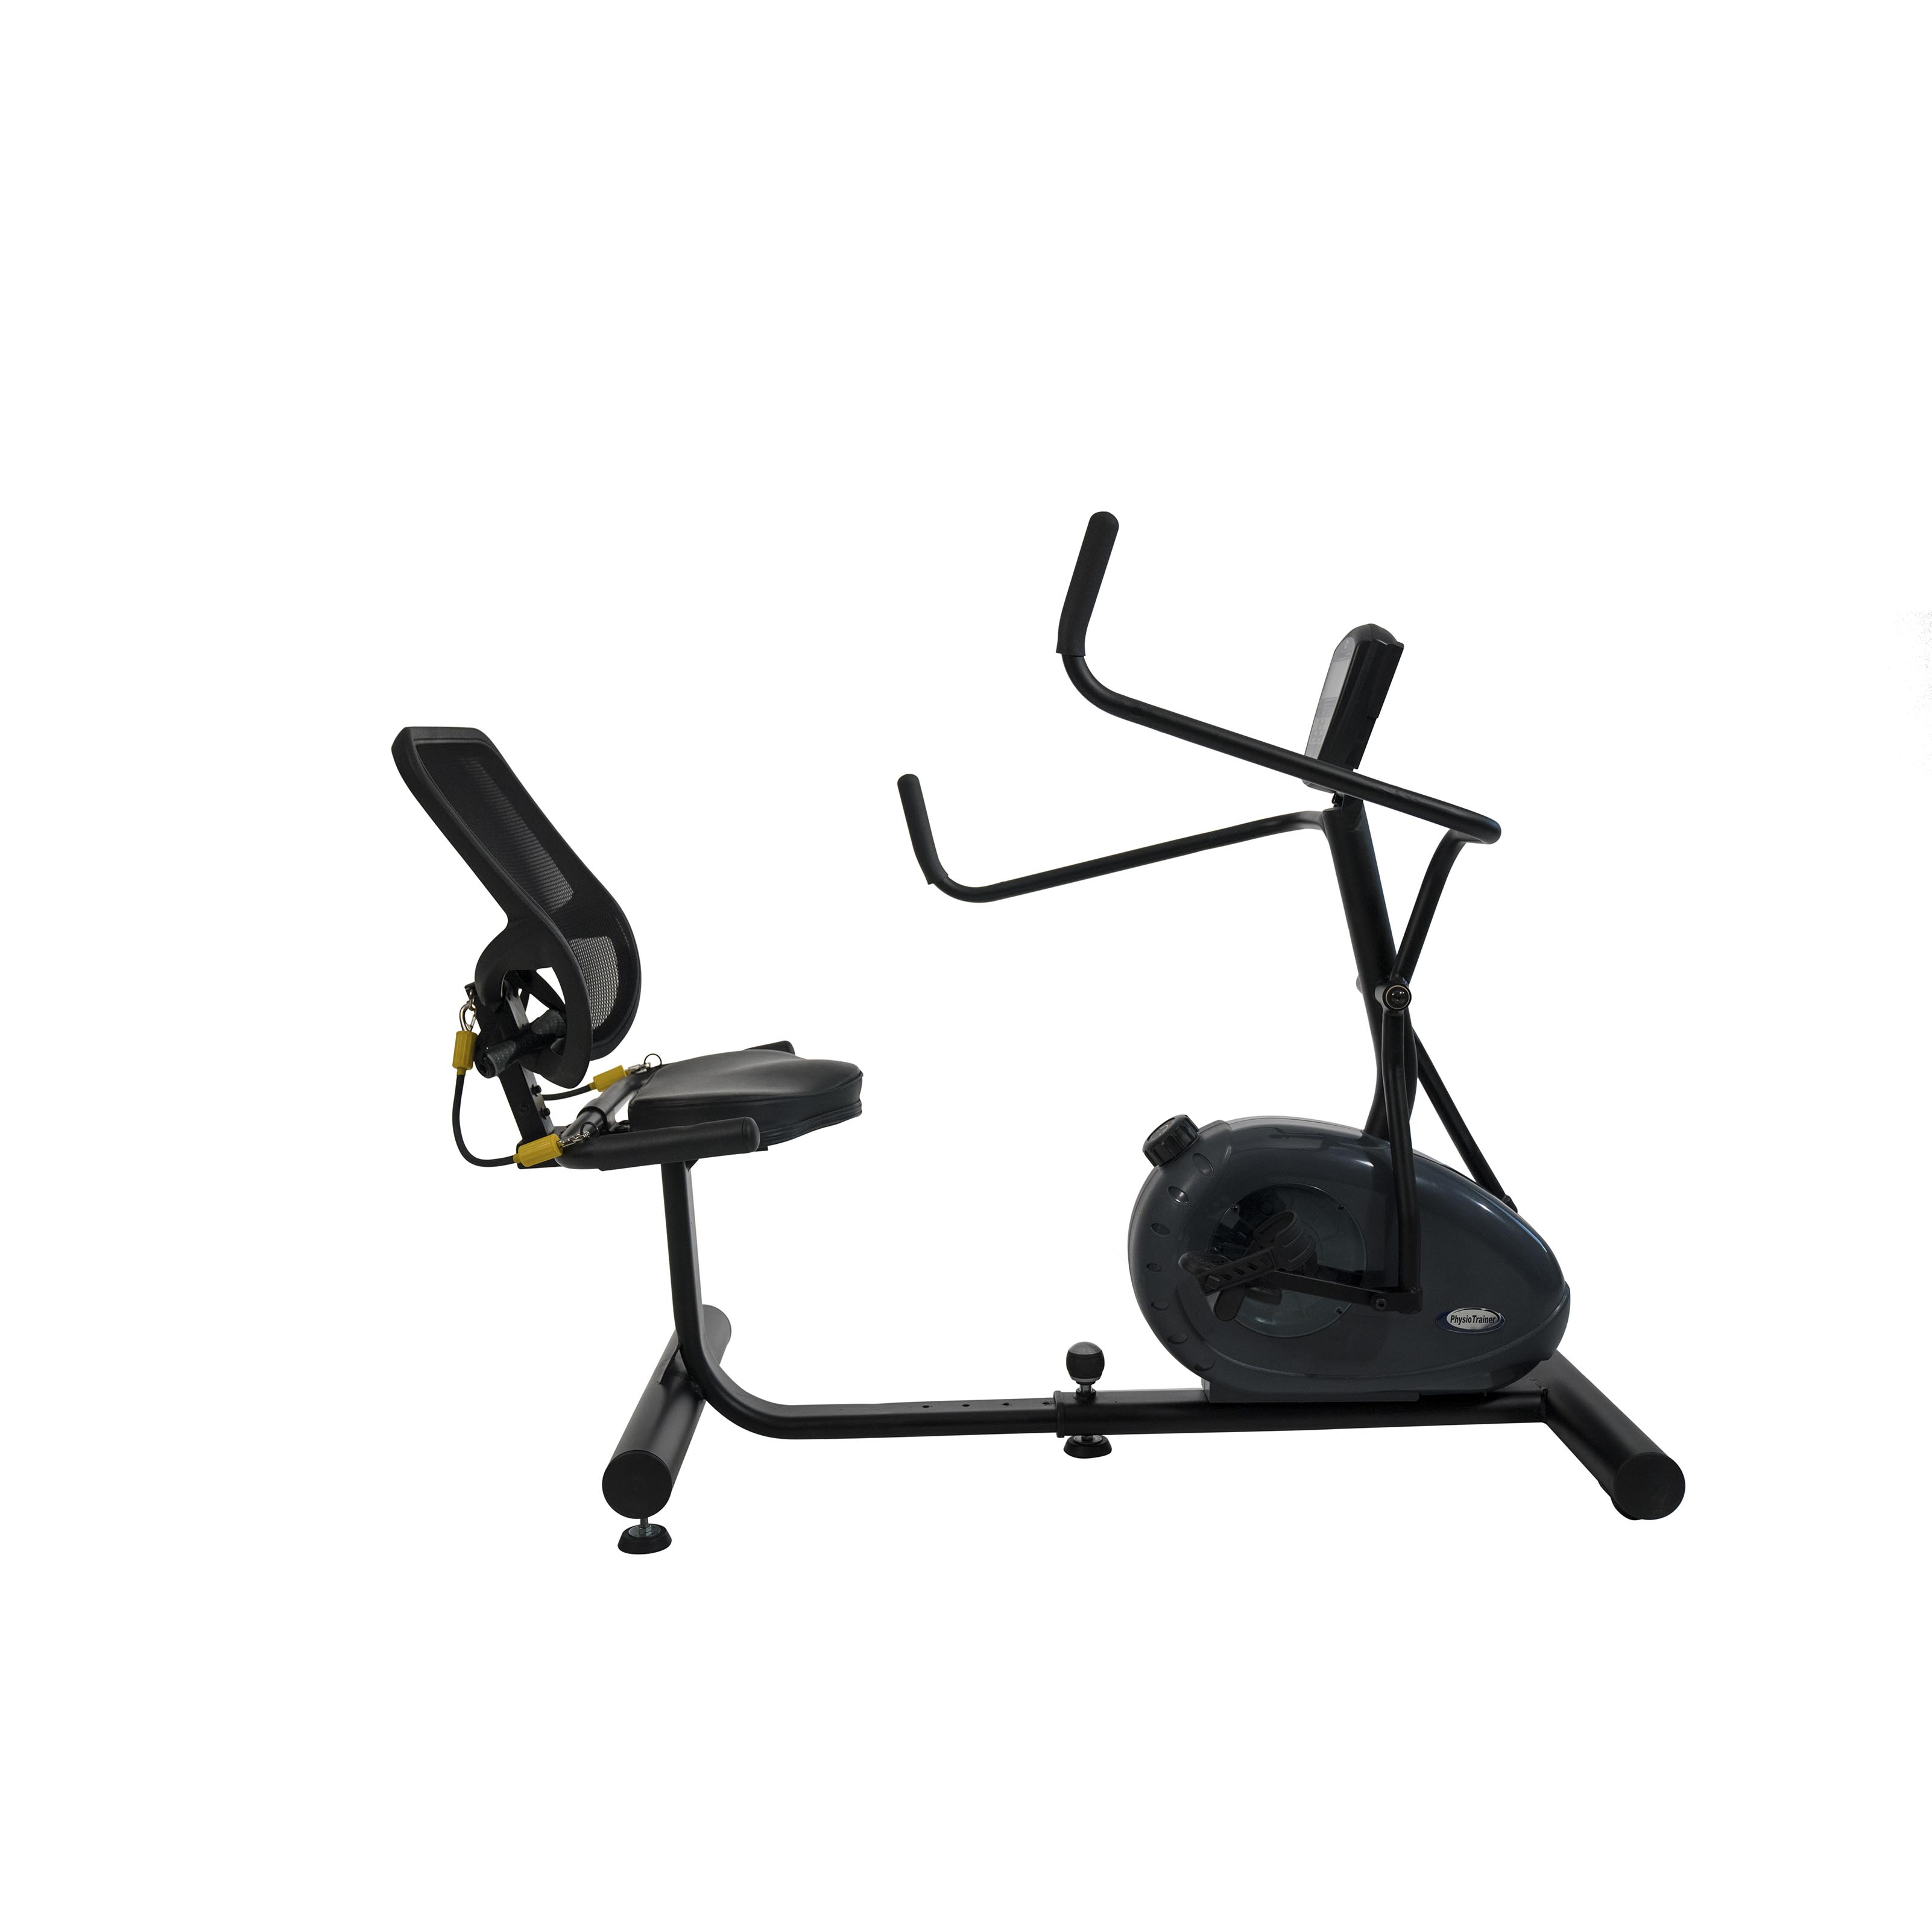 PhysioTrainer PRO Recumbent Stepper Cross Trainer